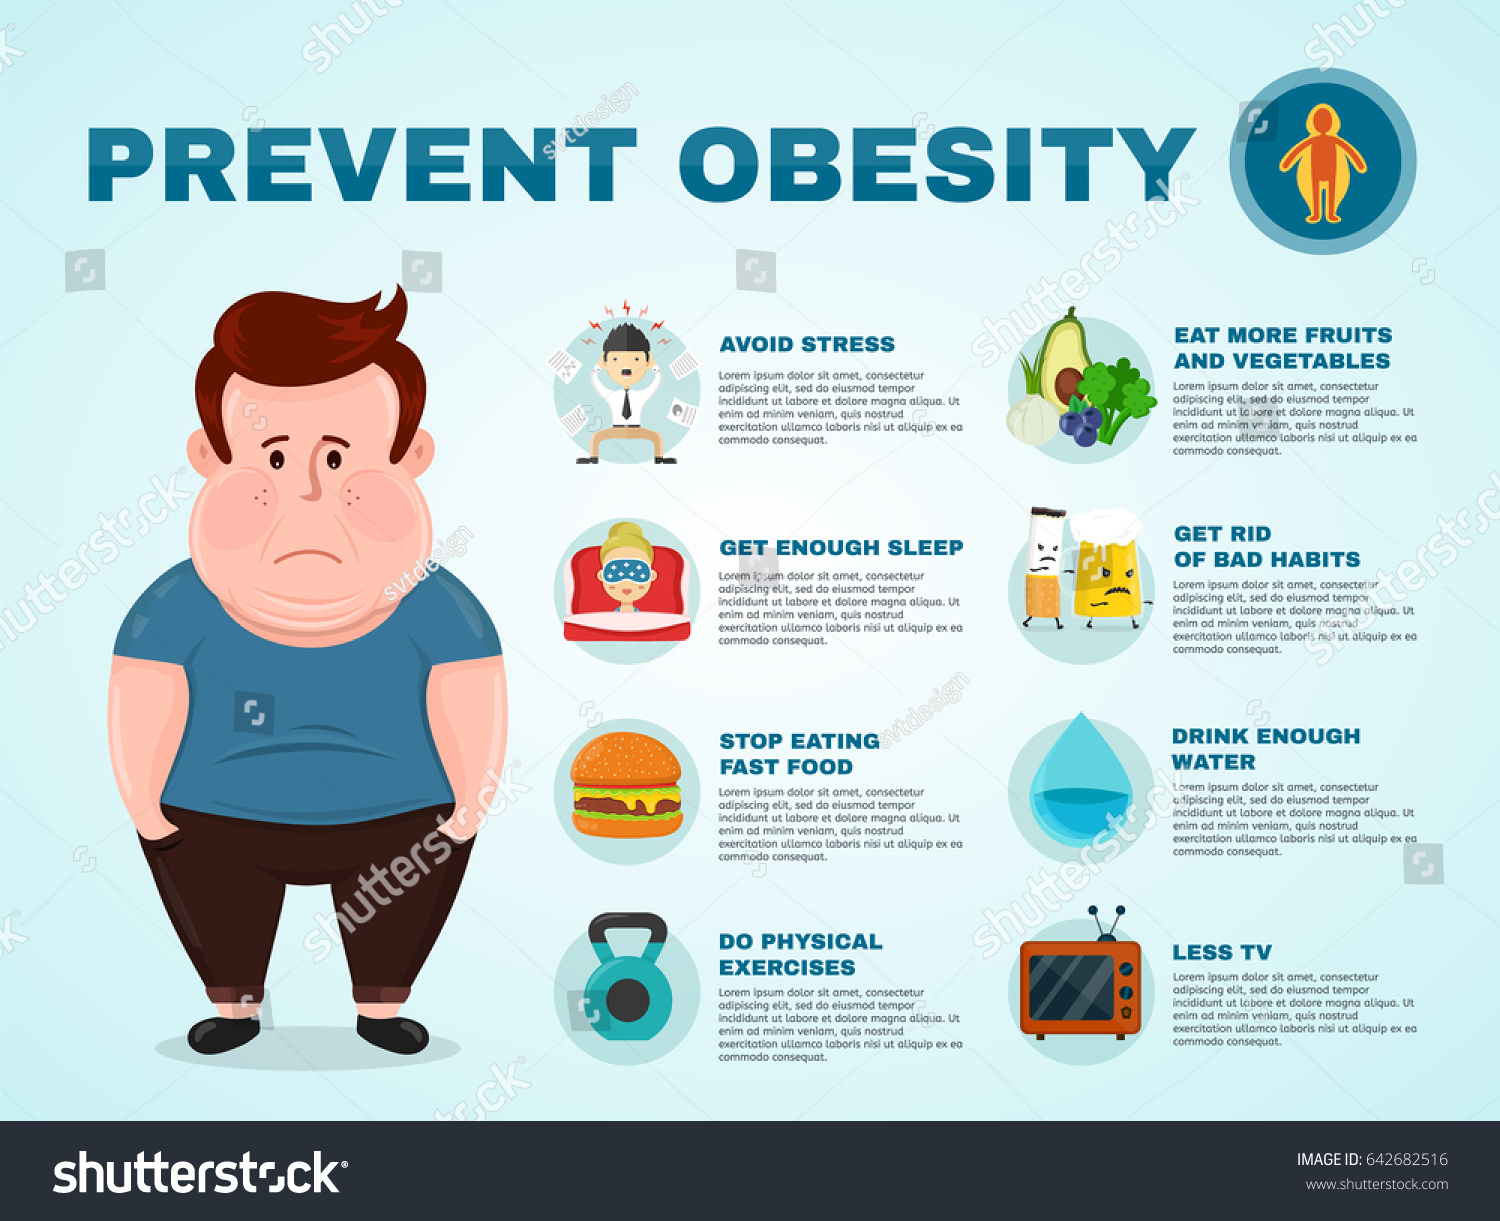 ways to overcome obesity Essays related to ways to prevent obesity 1 preventing obesity s have come up with numerous ways to treat obesity and help prevent it.